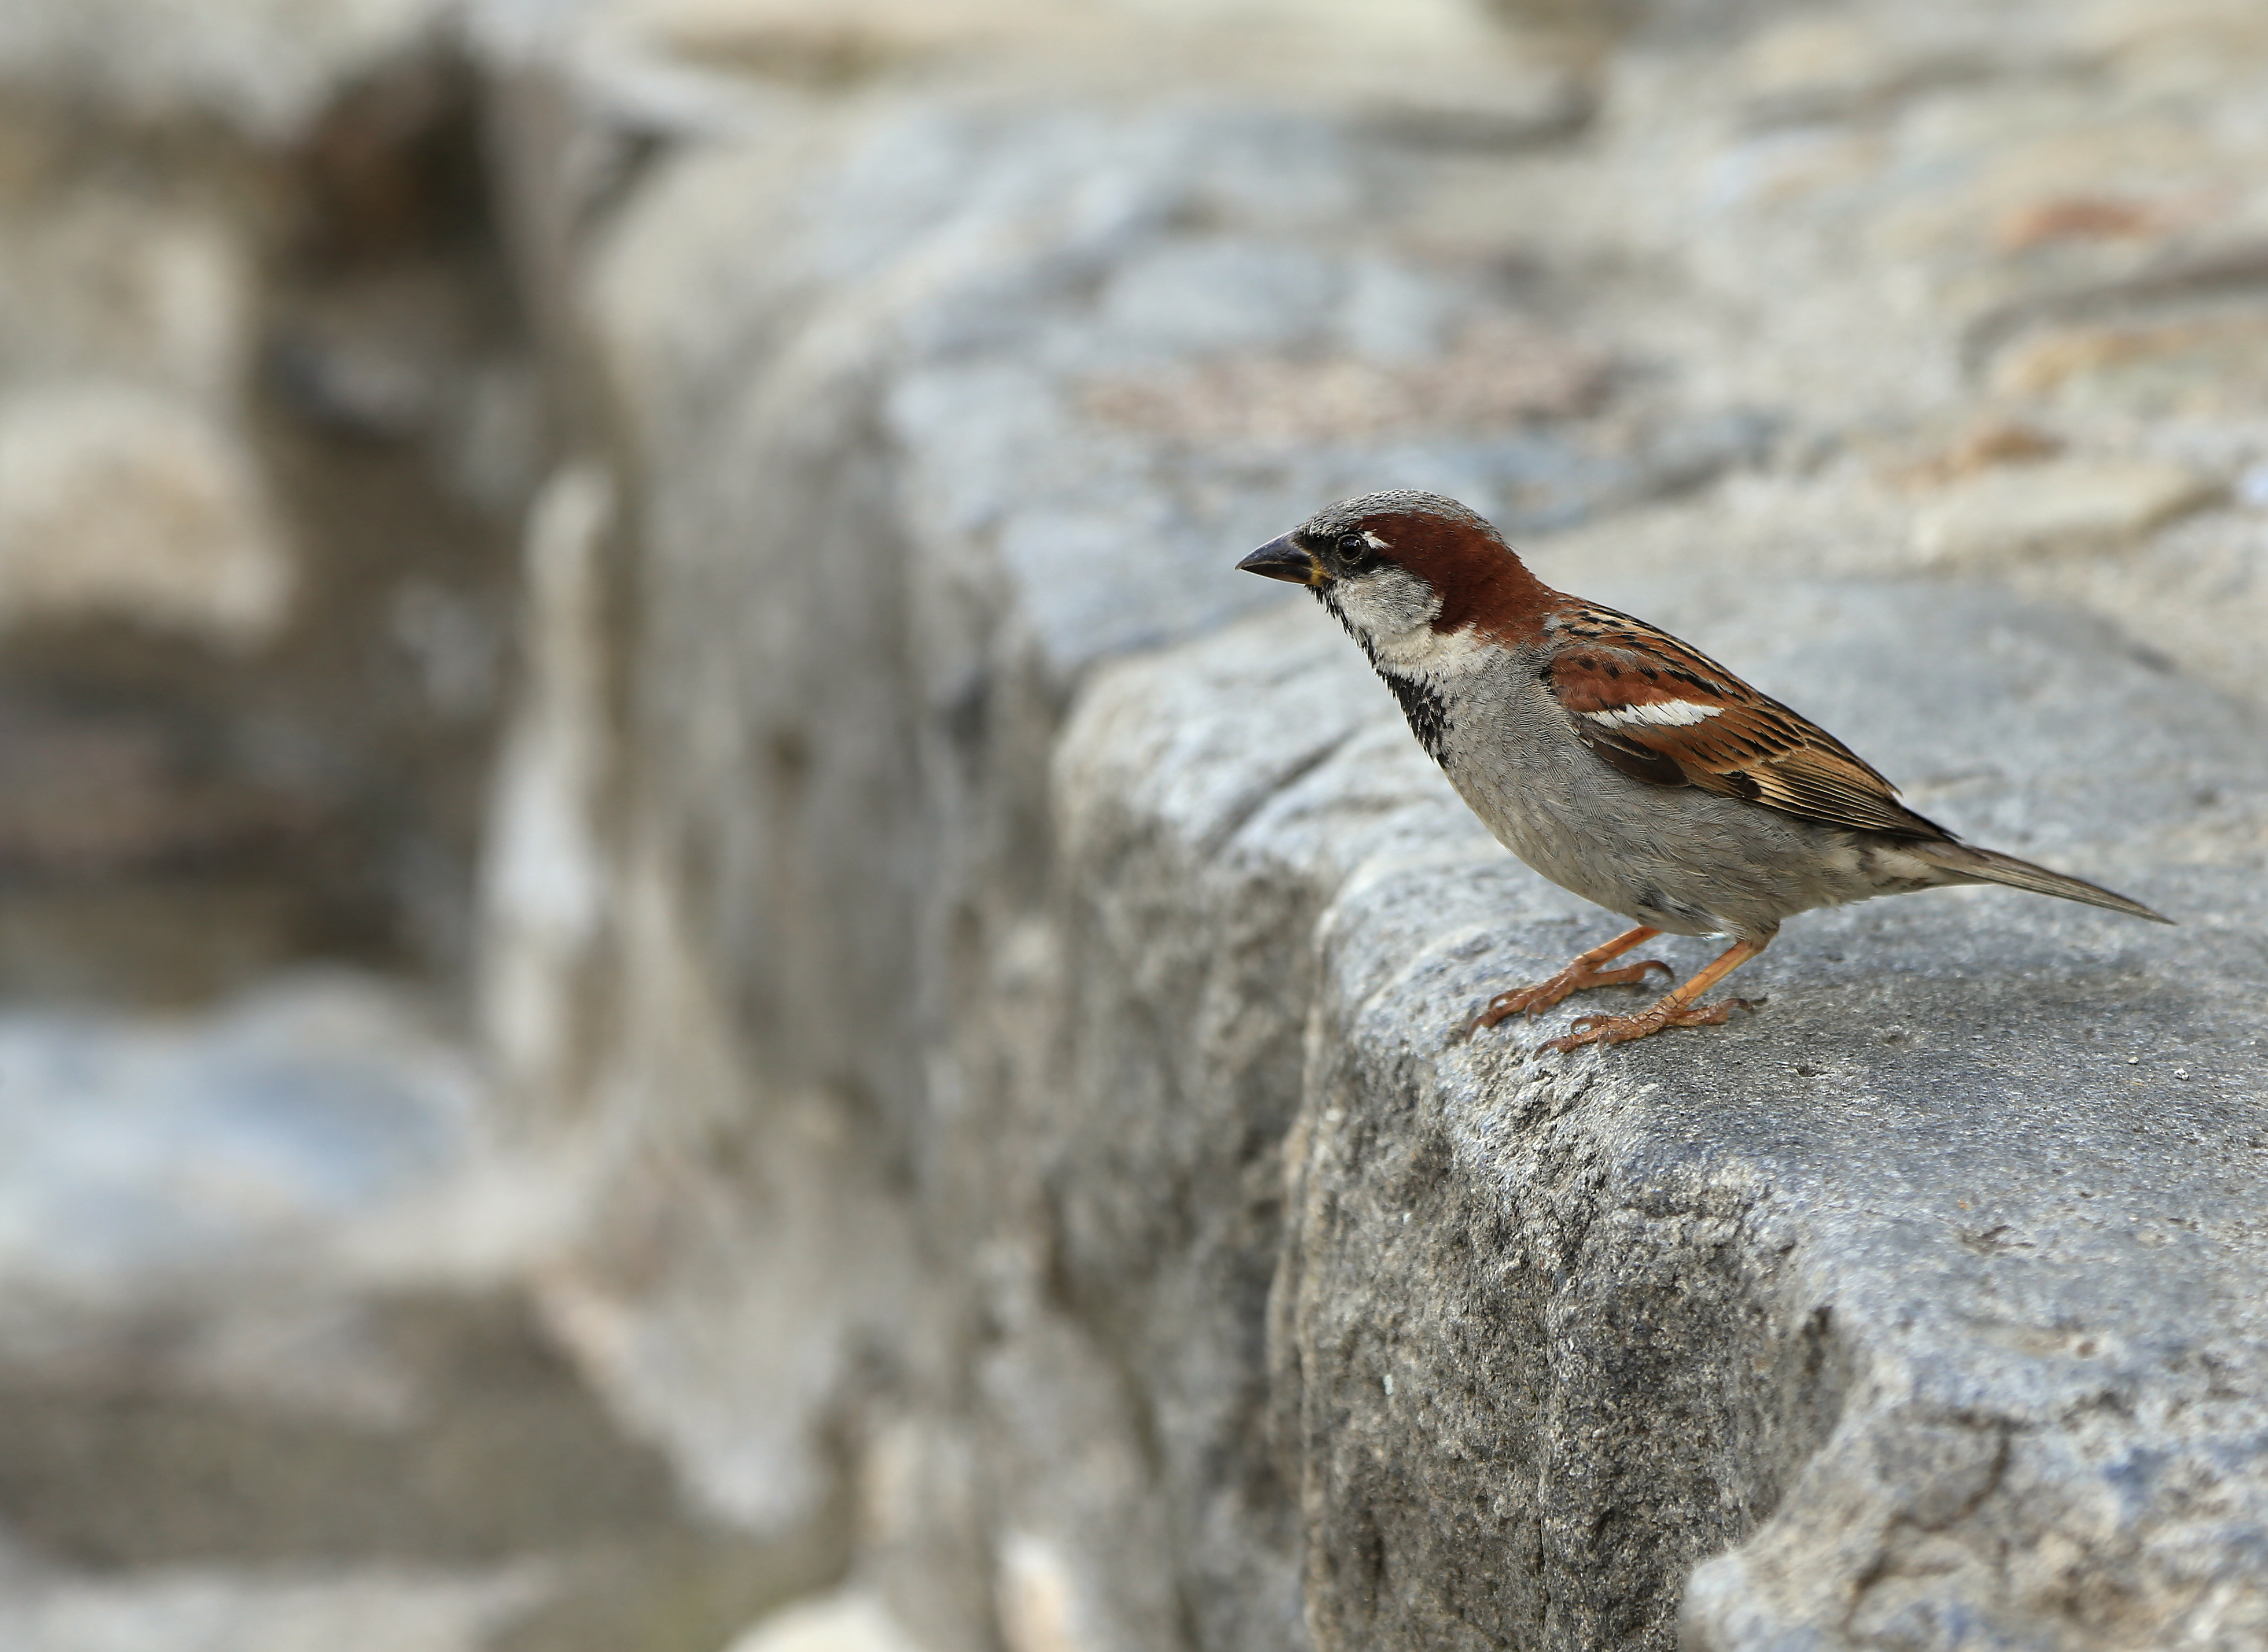 Sparrow on the Pavement in France